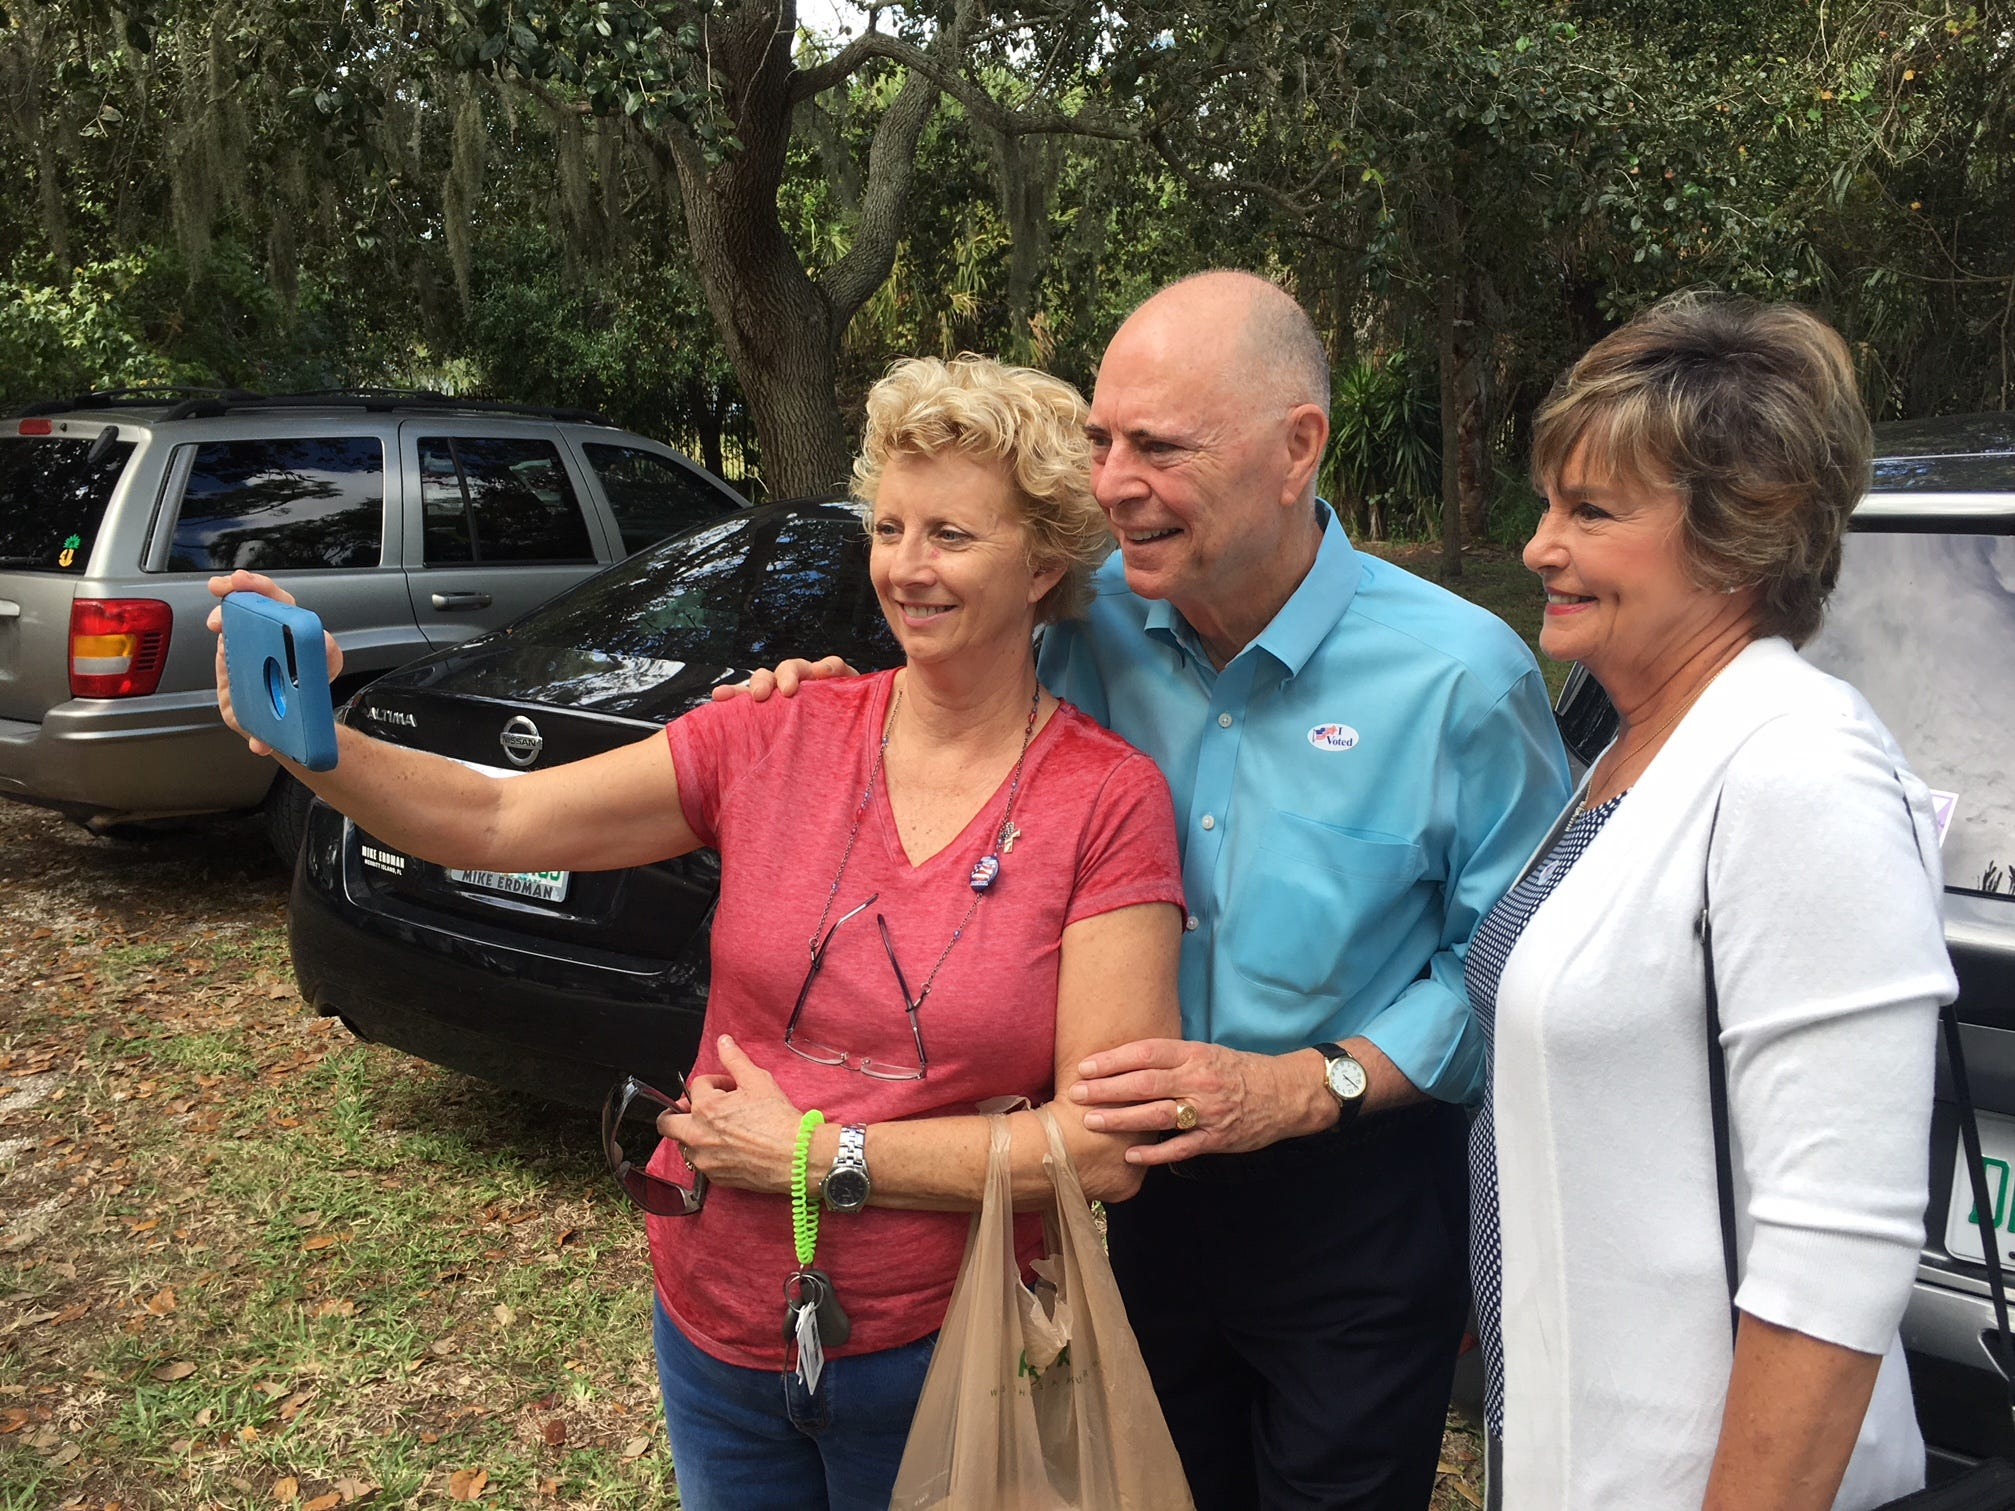 Dottie Jelinek does a selfie with Congressman Bill and Katie Posey after voting at Cocoa Rockledge Garden Club.